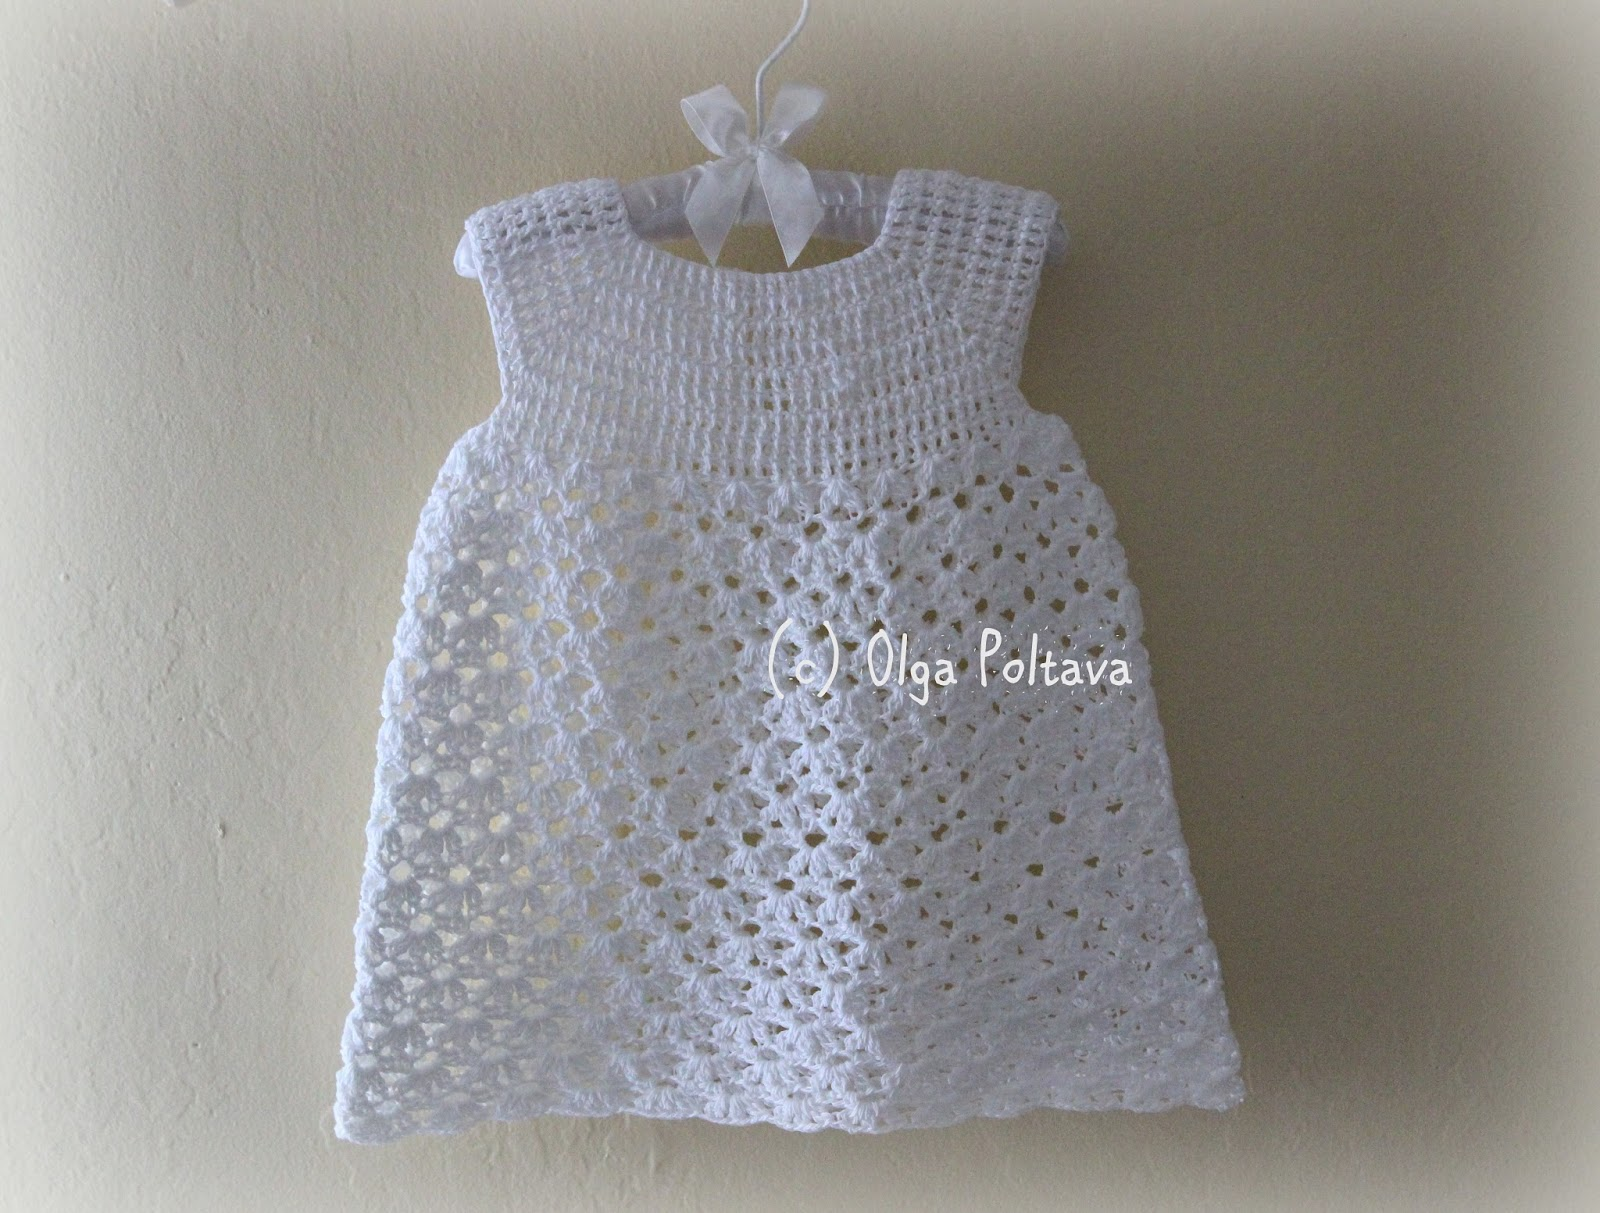 Crochet Baby Dress And Bonnet Pattern : Lacy Crochet: Two New Patterns: Baby Dress and Girls Hat